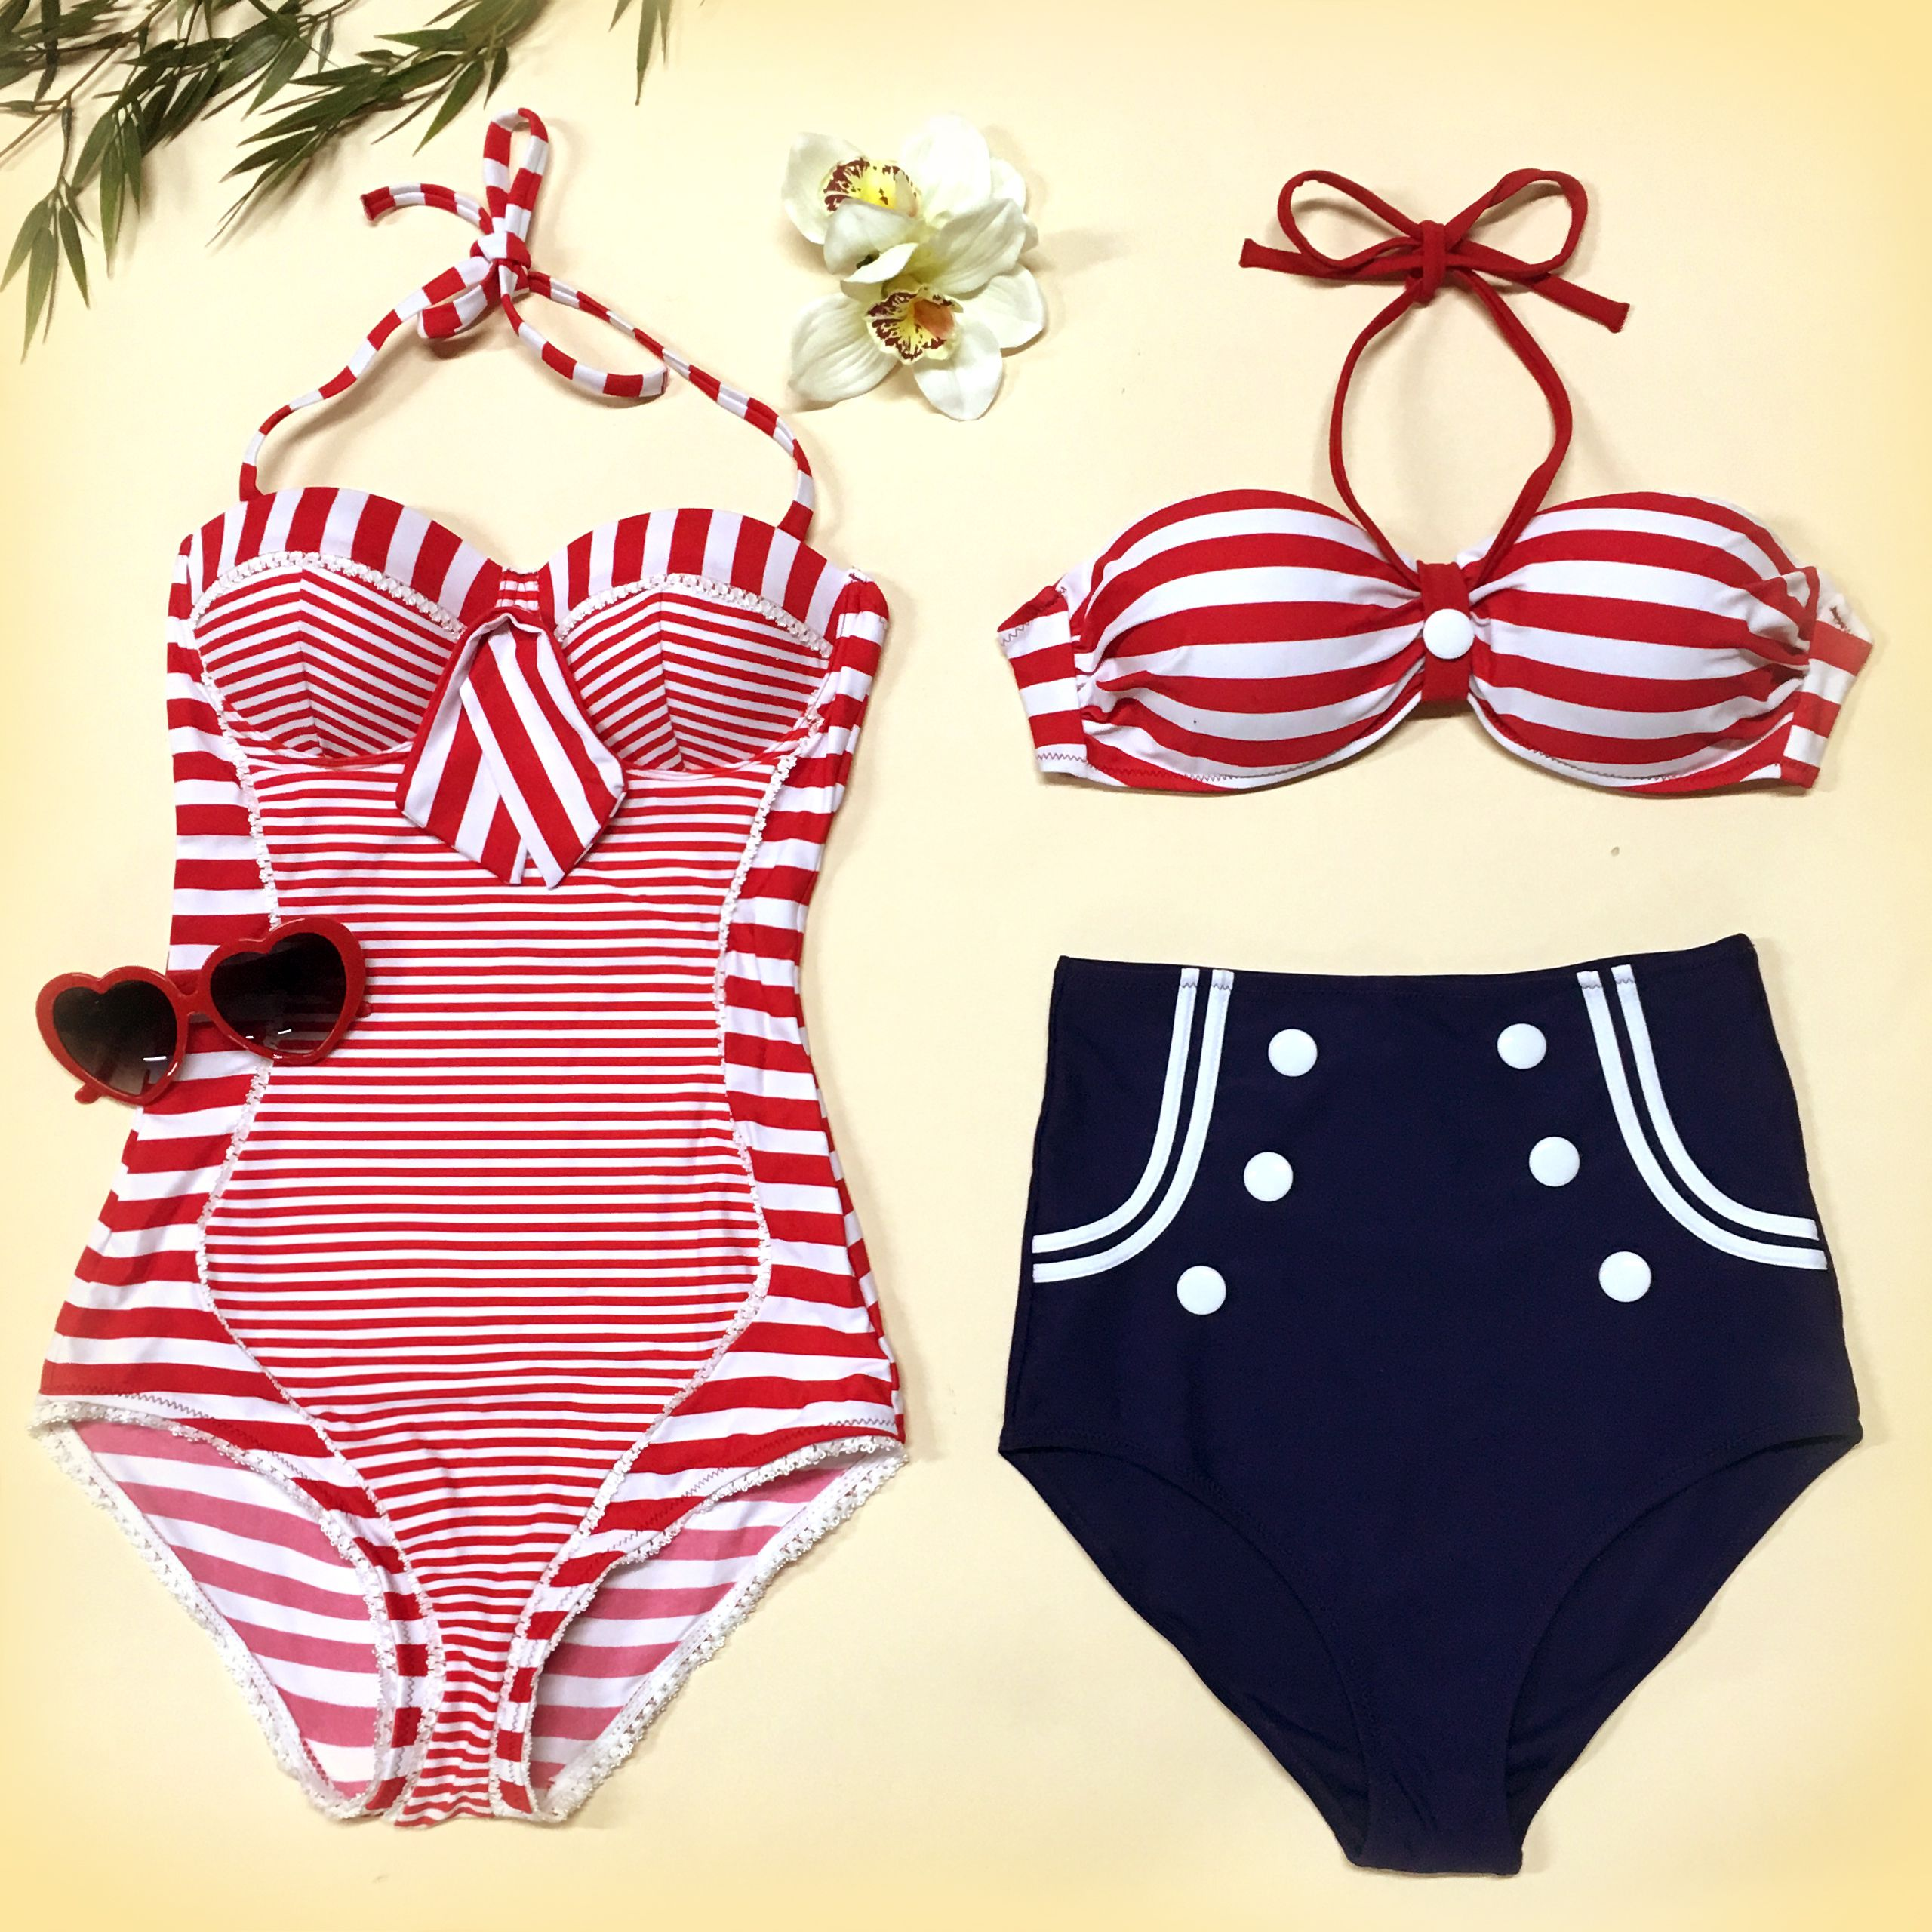 8620ae869a Many Marine will twist their necks when you stroll along with this swimwear  by Bellissima!